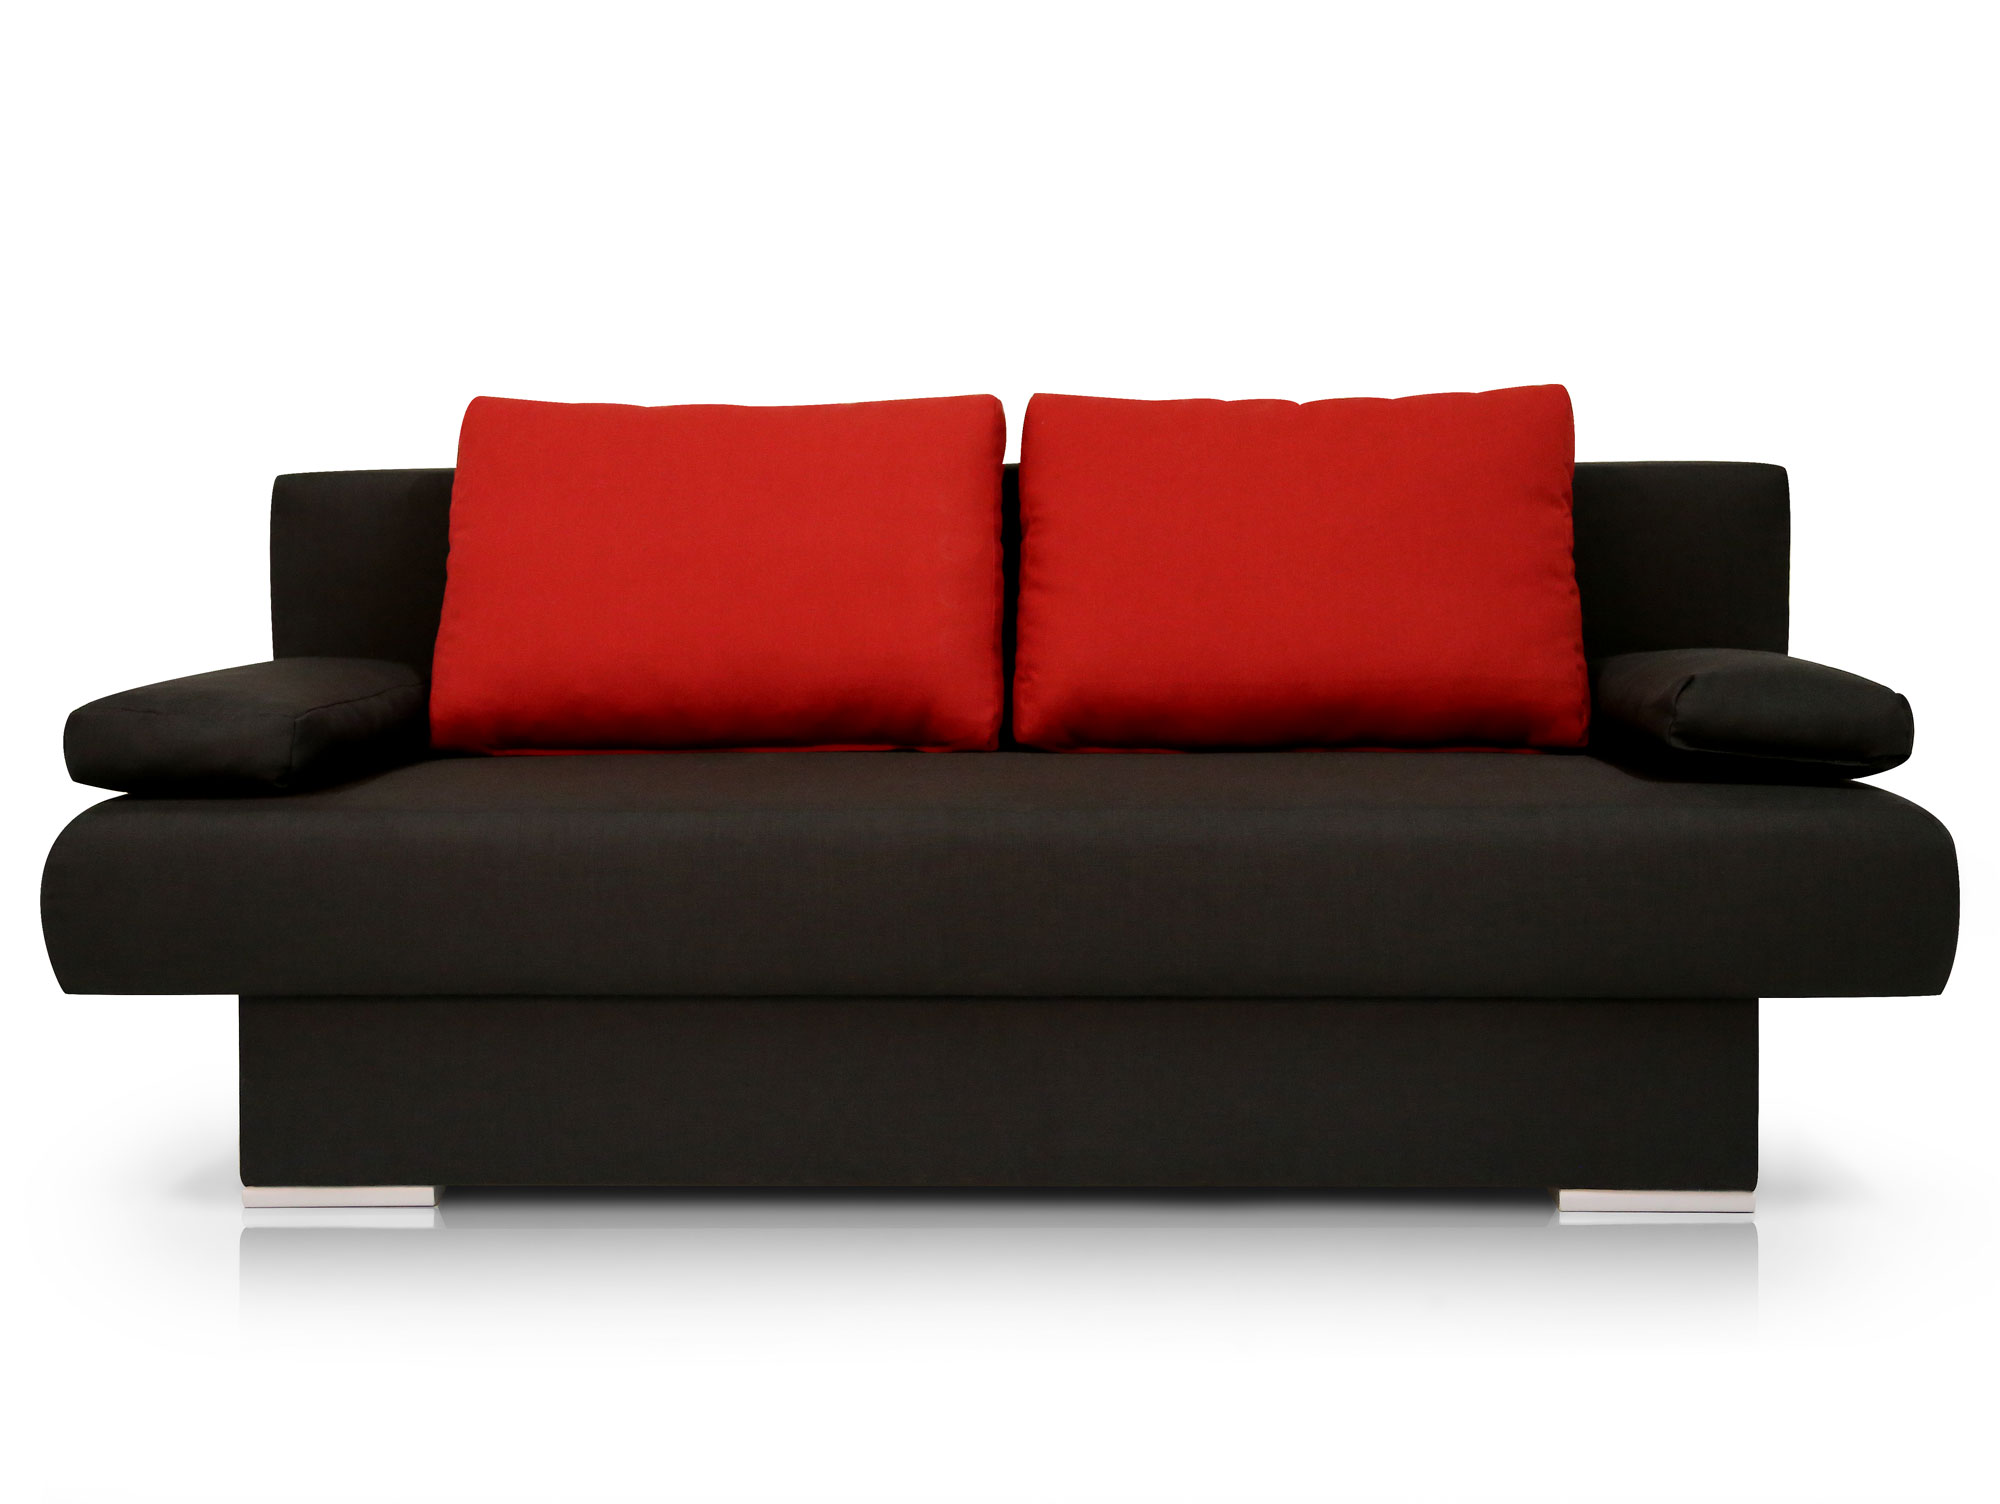 mike schlafsofa schlafcouch schwarz kissen rot. Black Bedroom Furniture Sets. Home Design Ideas